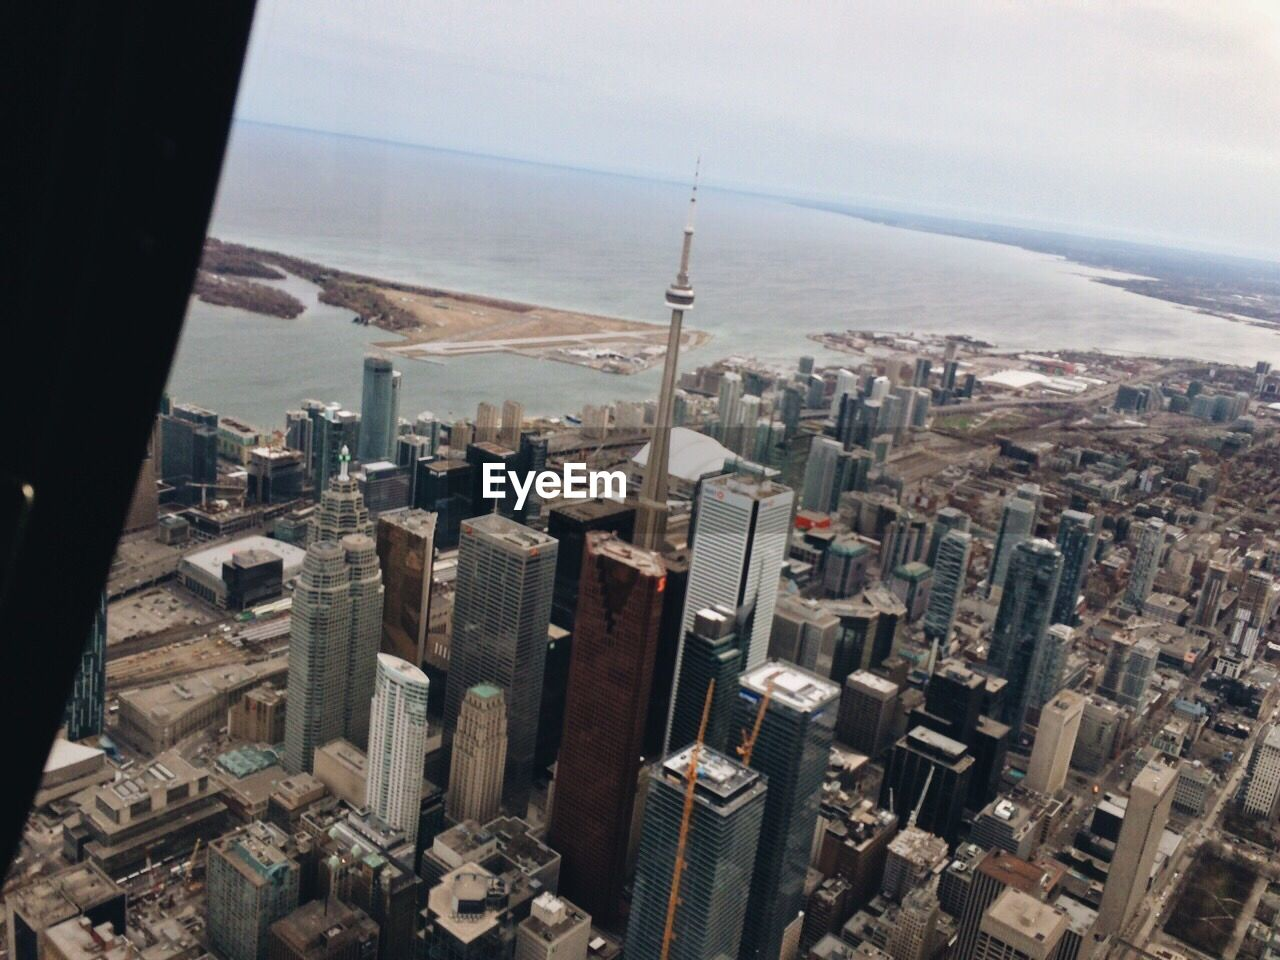 cityscape, city, skyscraper, architecture, sea, crowded, building exterior, day, aerial view, outdoors, sky, built structure, water